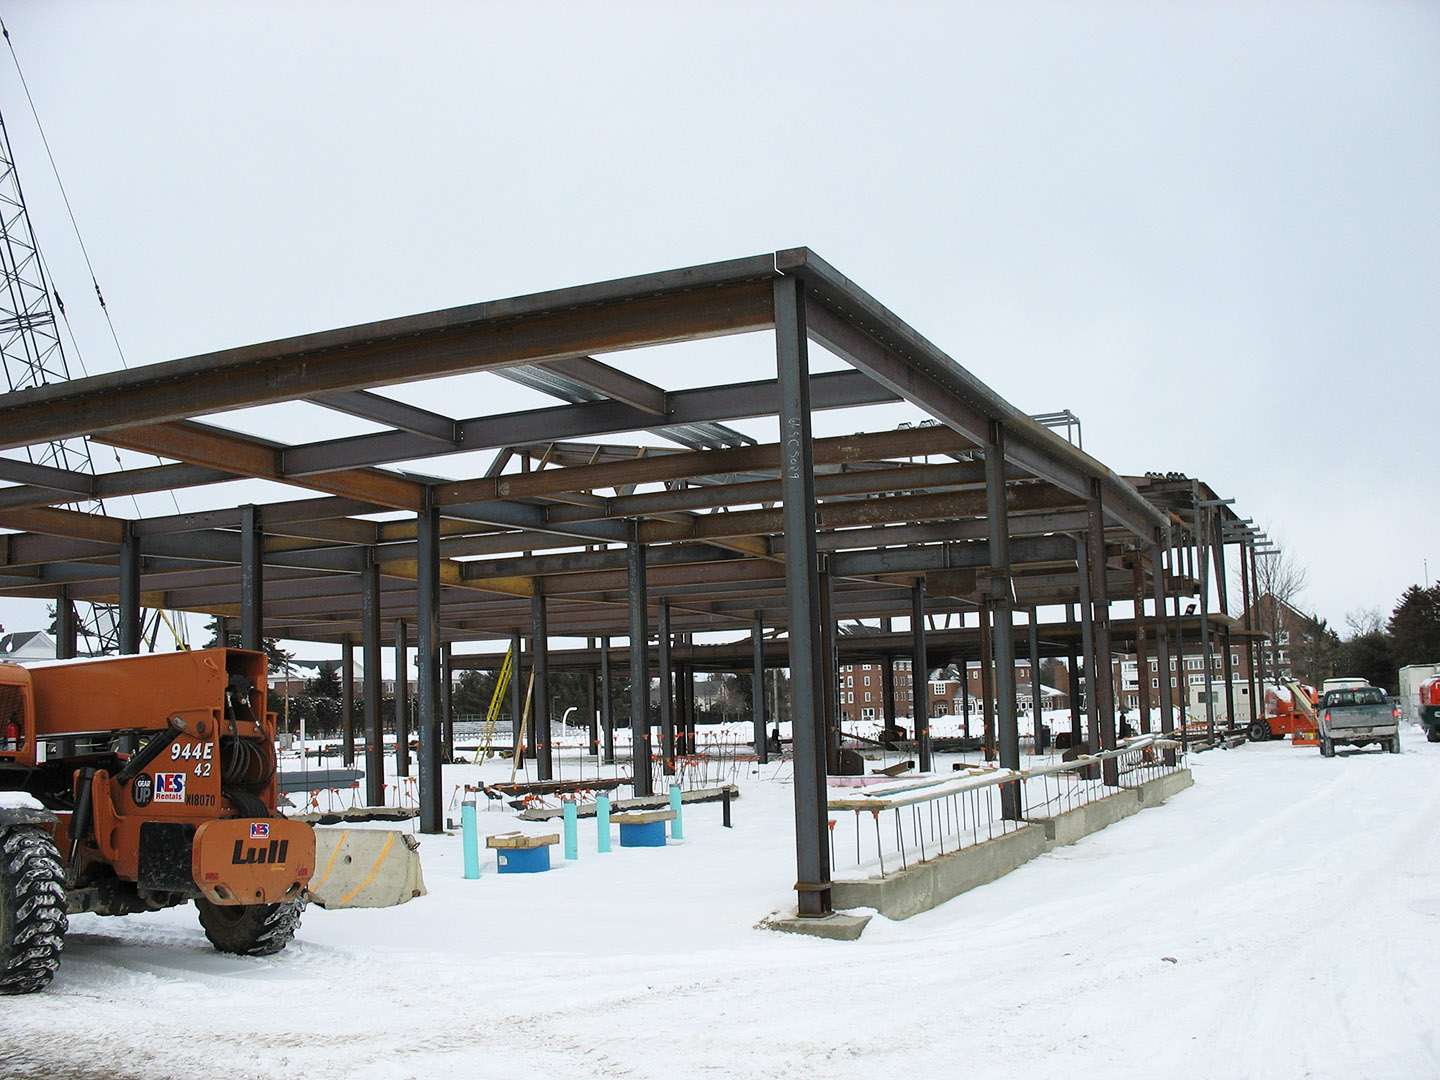 Btr Roofing Campus construction update: Week of Feb. 5, 2007 | News ...